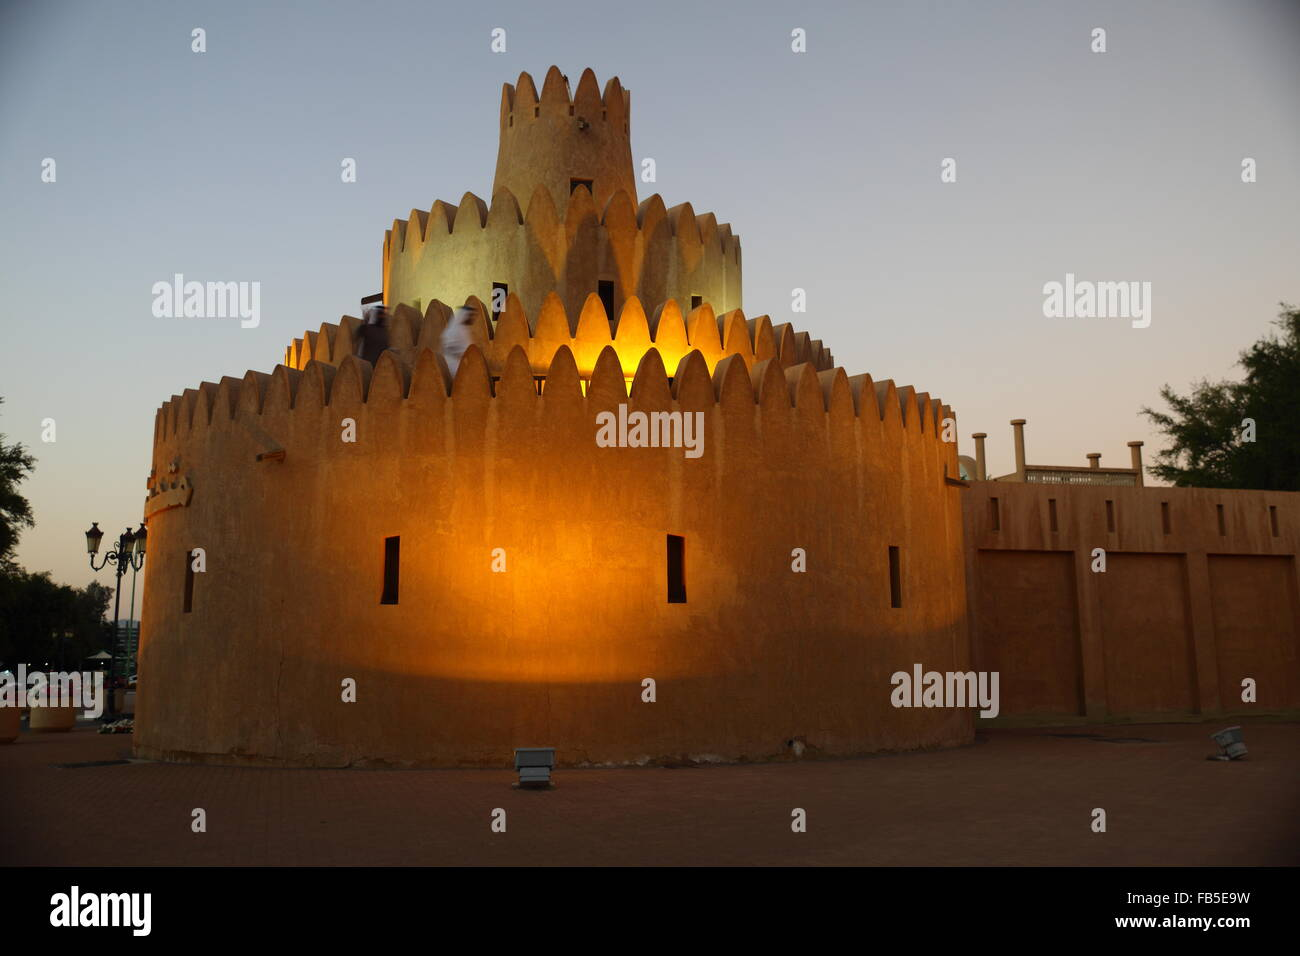 Sheikh Zayed Palace Museum in the city of Al Ain, Unite Arab Emirates - Stock Image